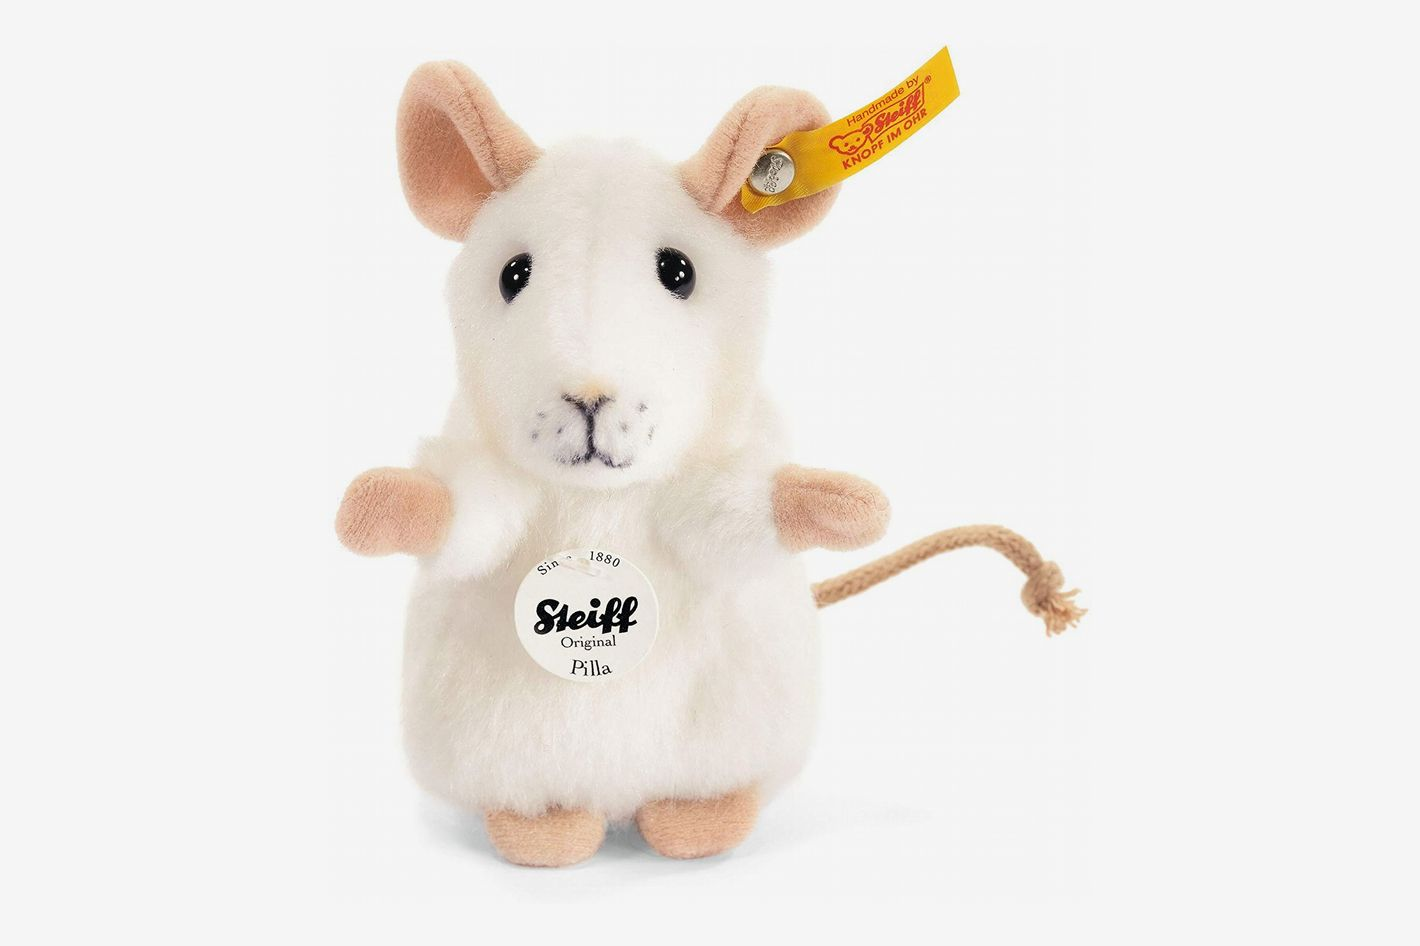 Steiff Pilla White Mouse